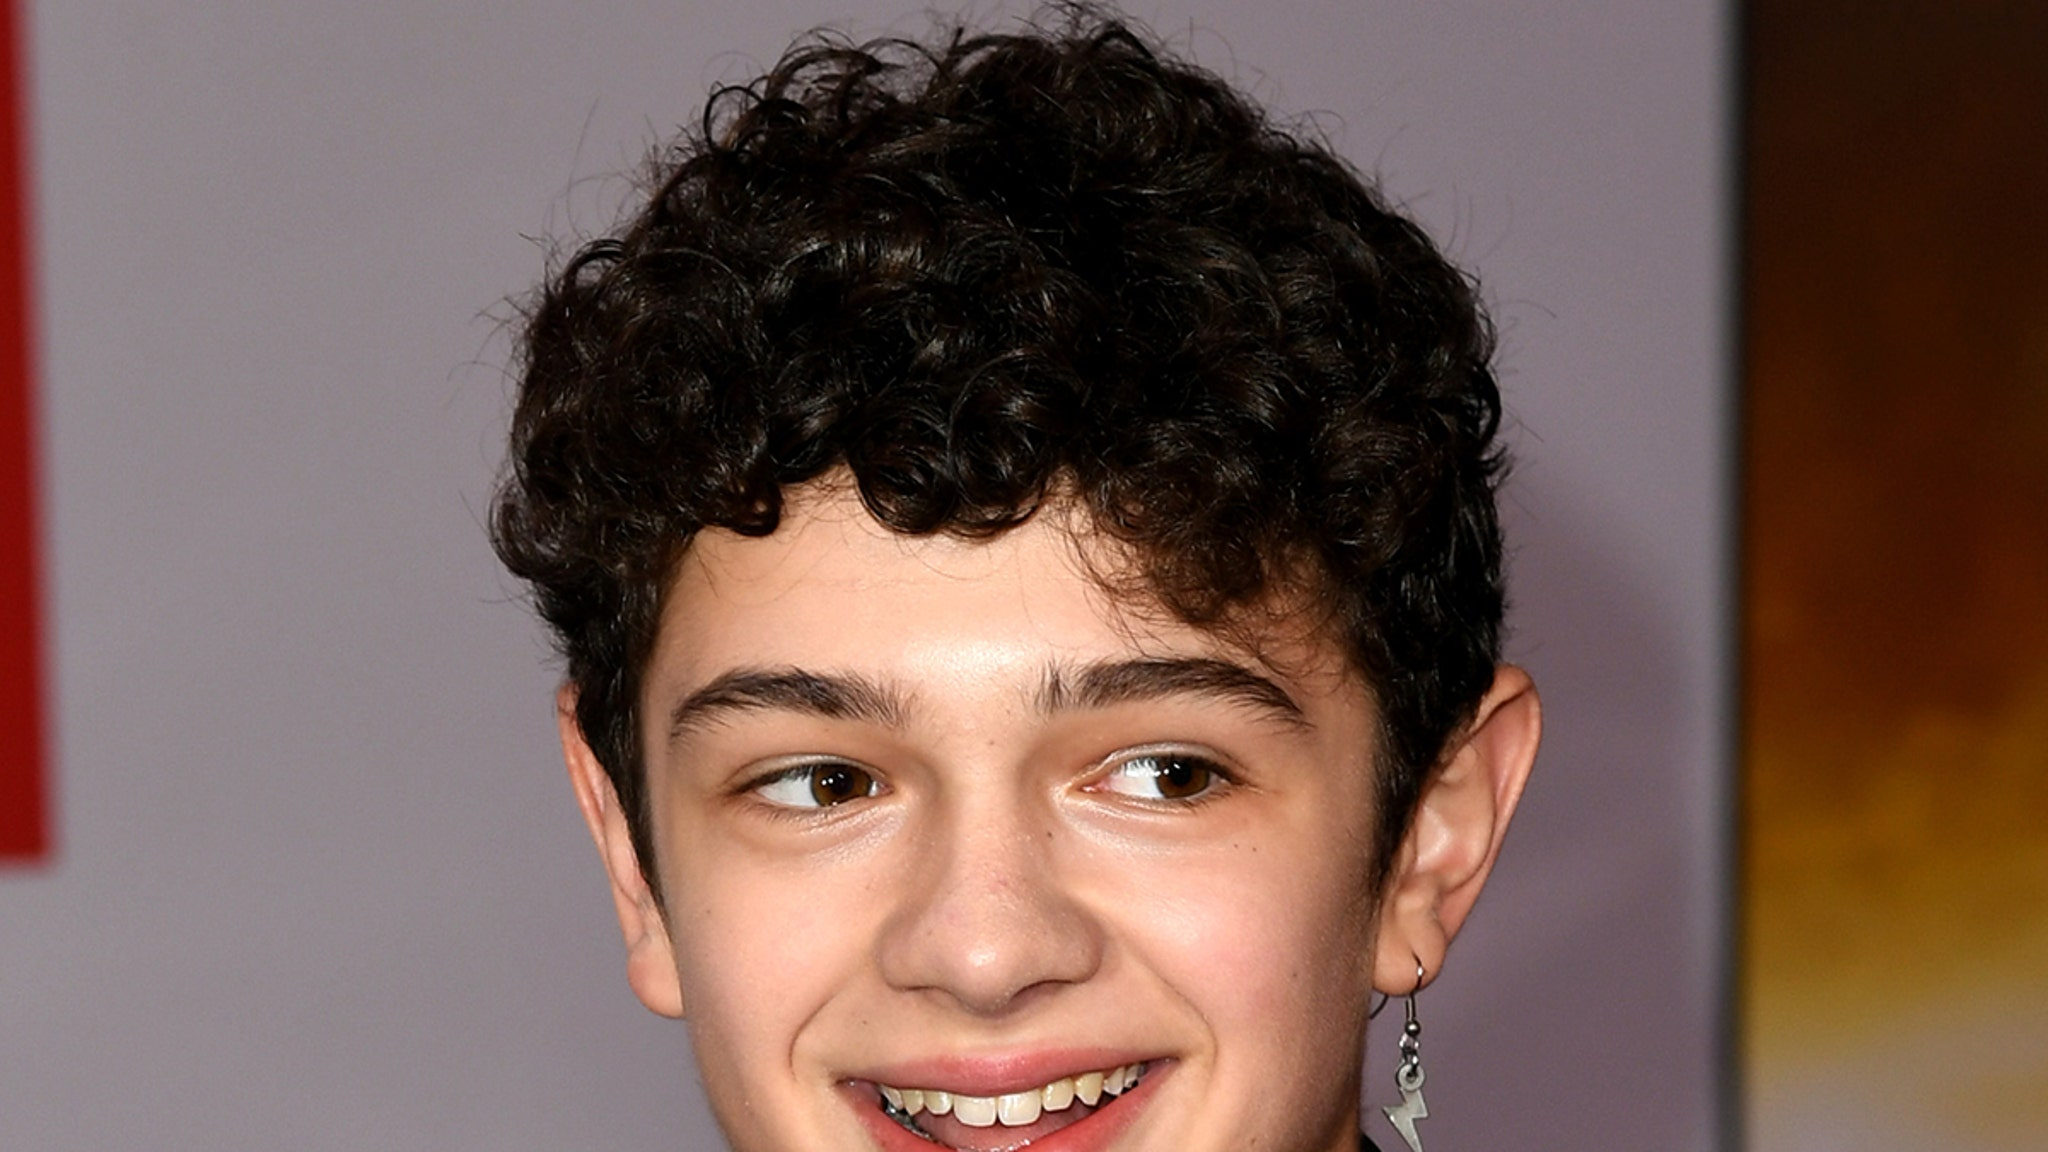 'The Undoing' Star Noah Jupe Banked $600k to Film HBO Show